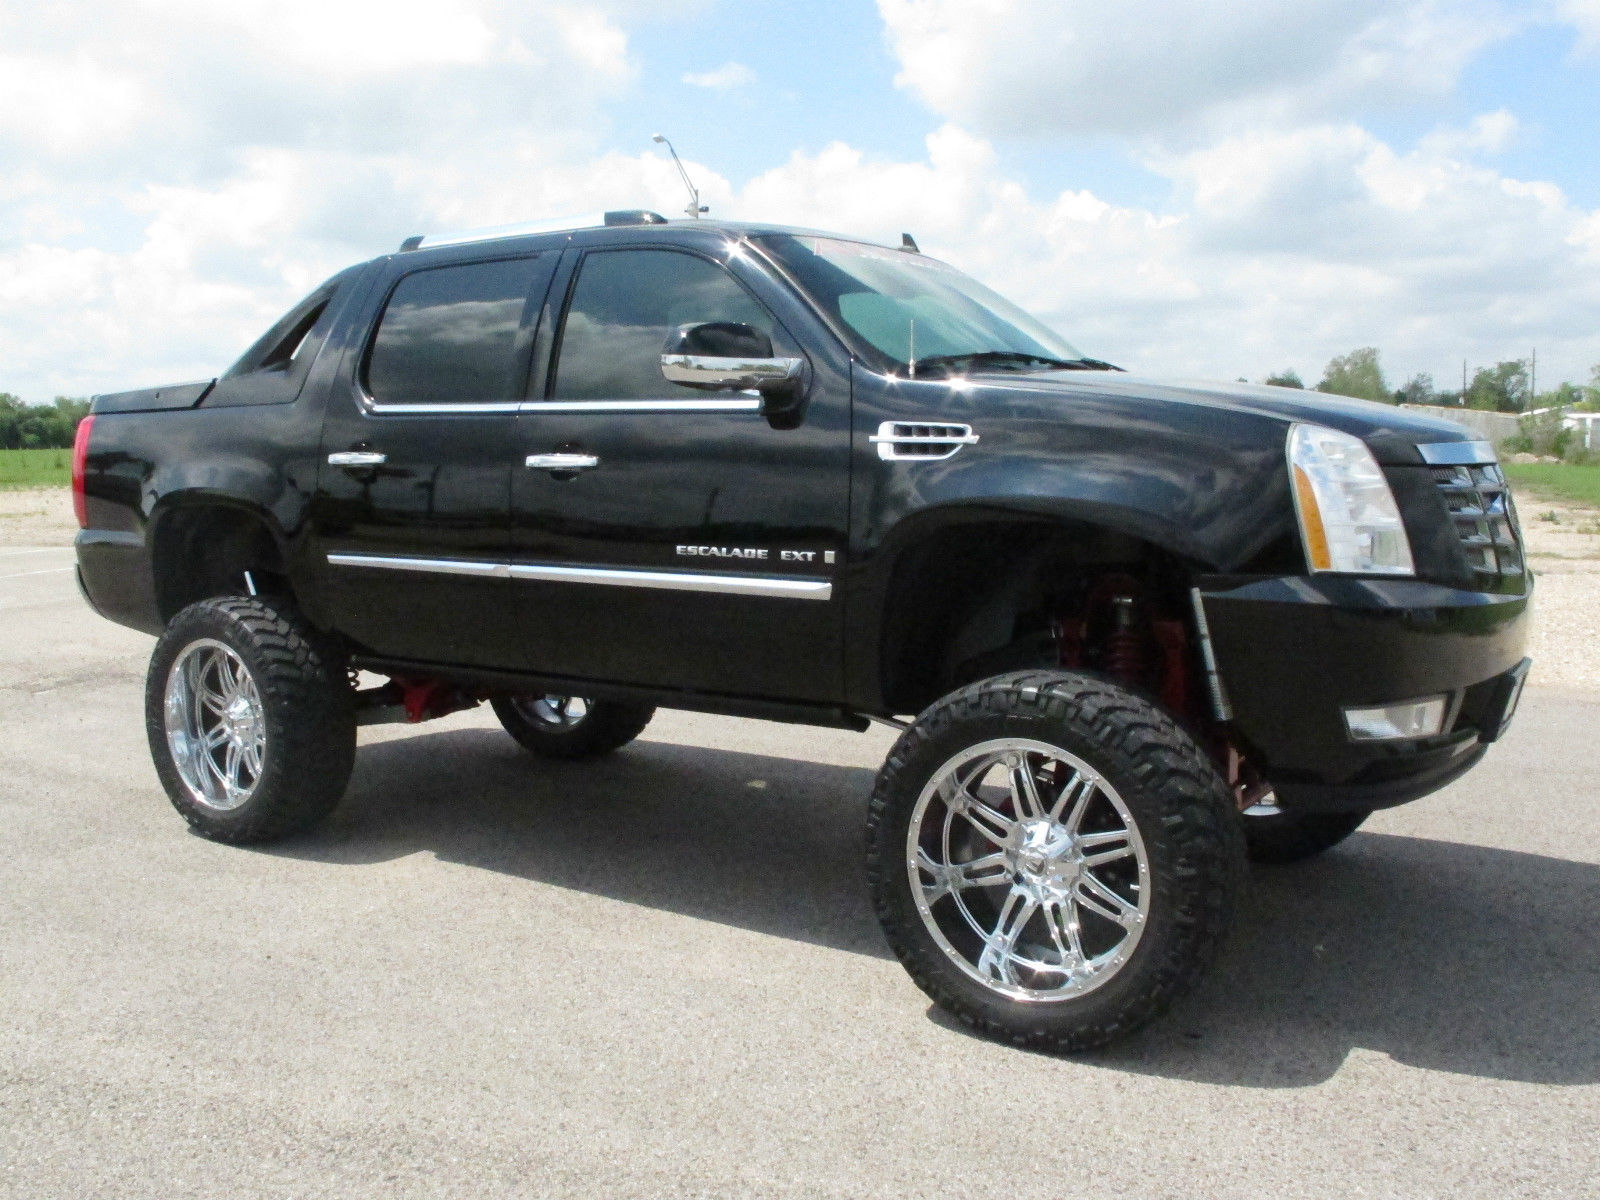 Best Off Road Tires >> Lifted Escalade EXT On Fuel Wheels | For Sale Friday - Rides Magazine